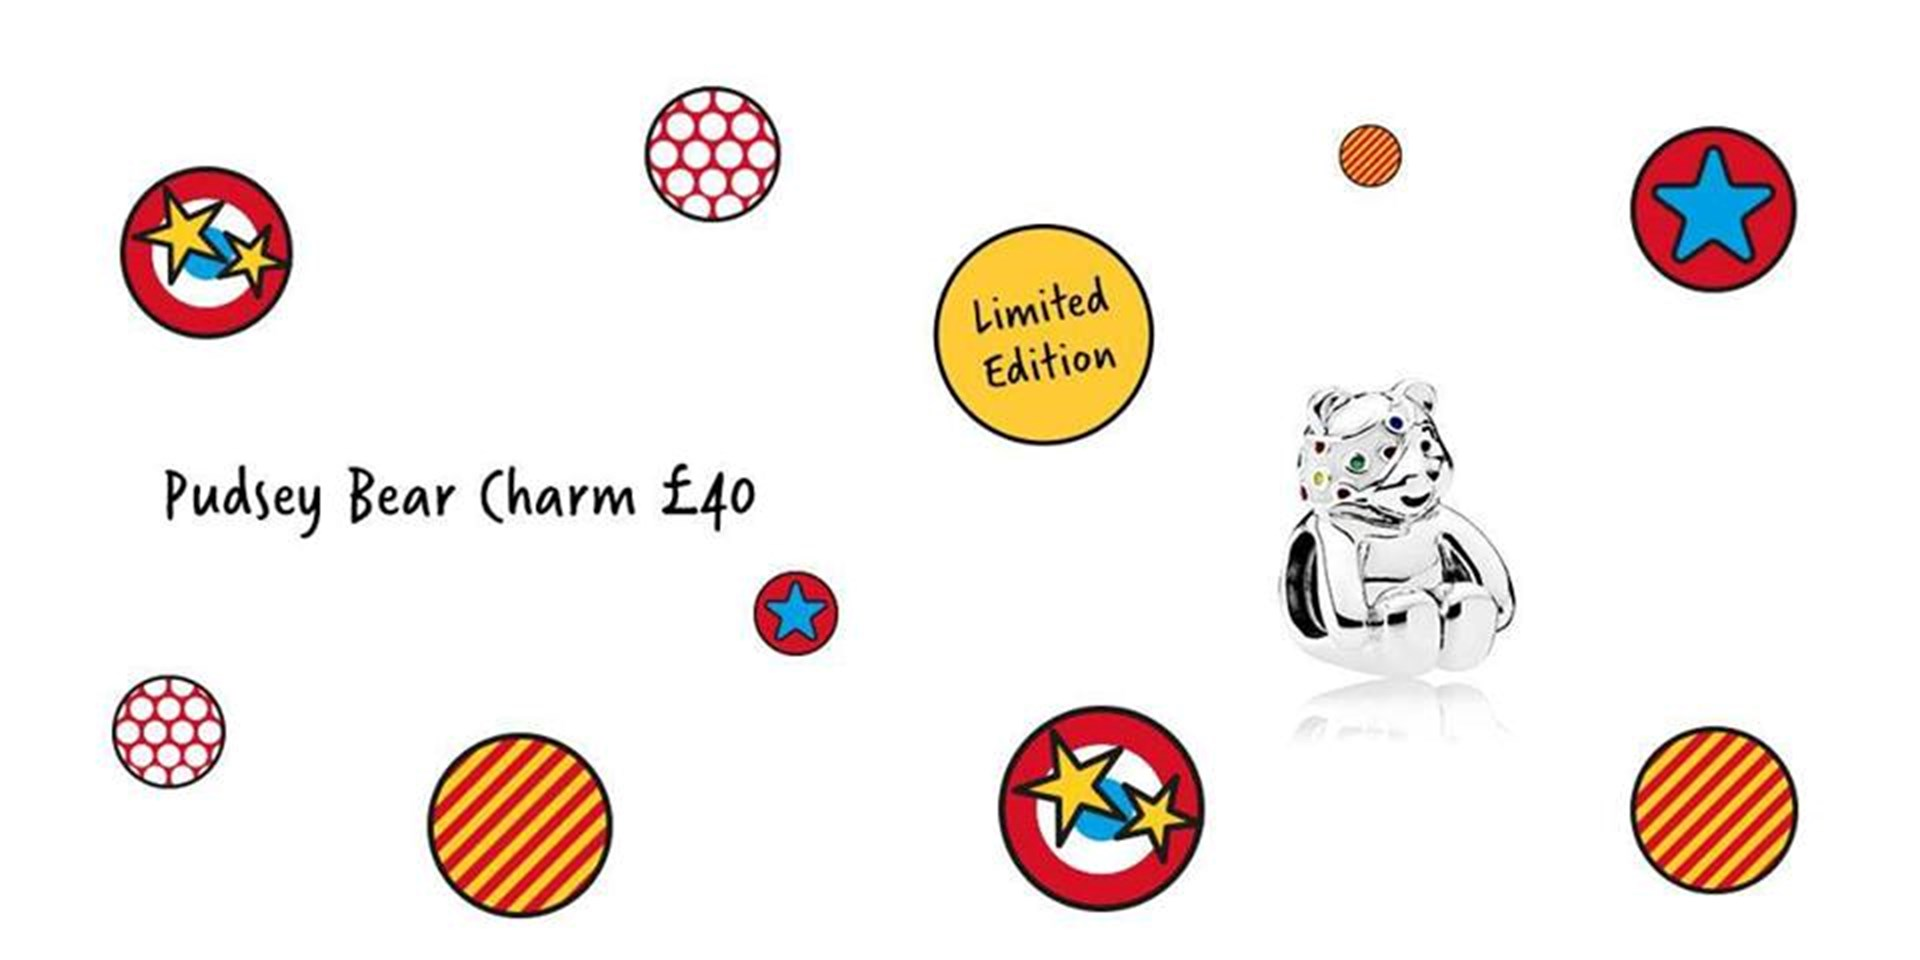 Laura Casson is fundraising for BBC Children in Need